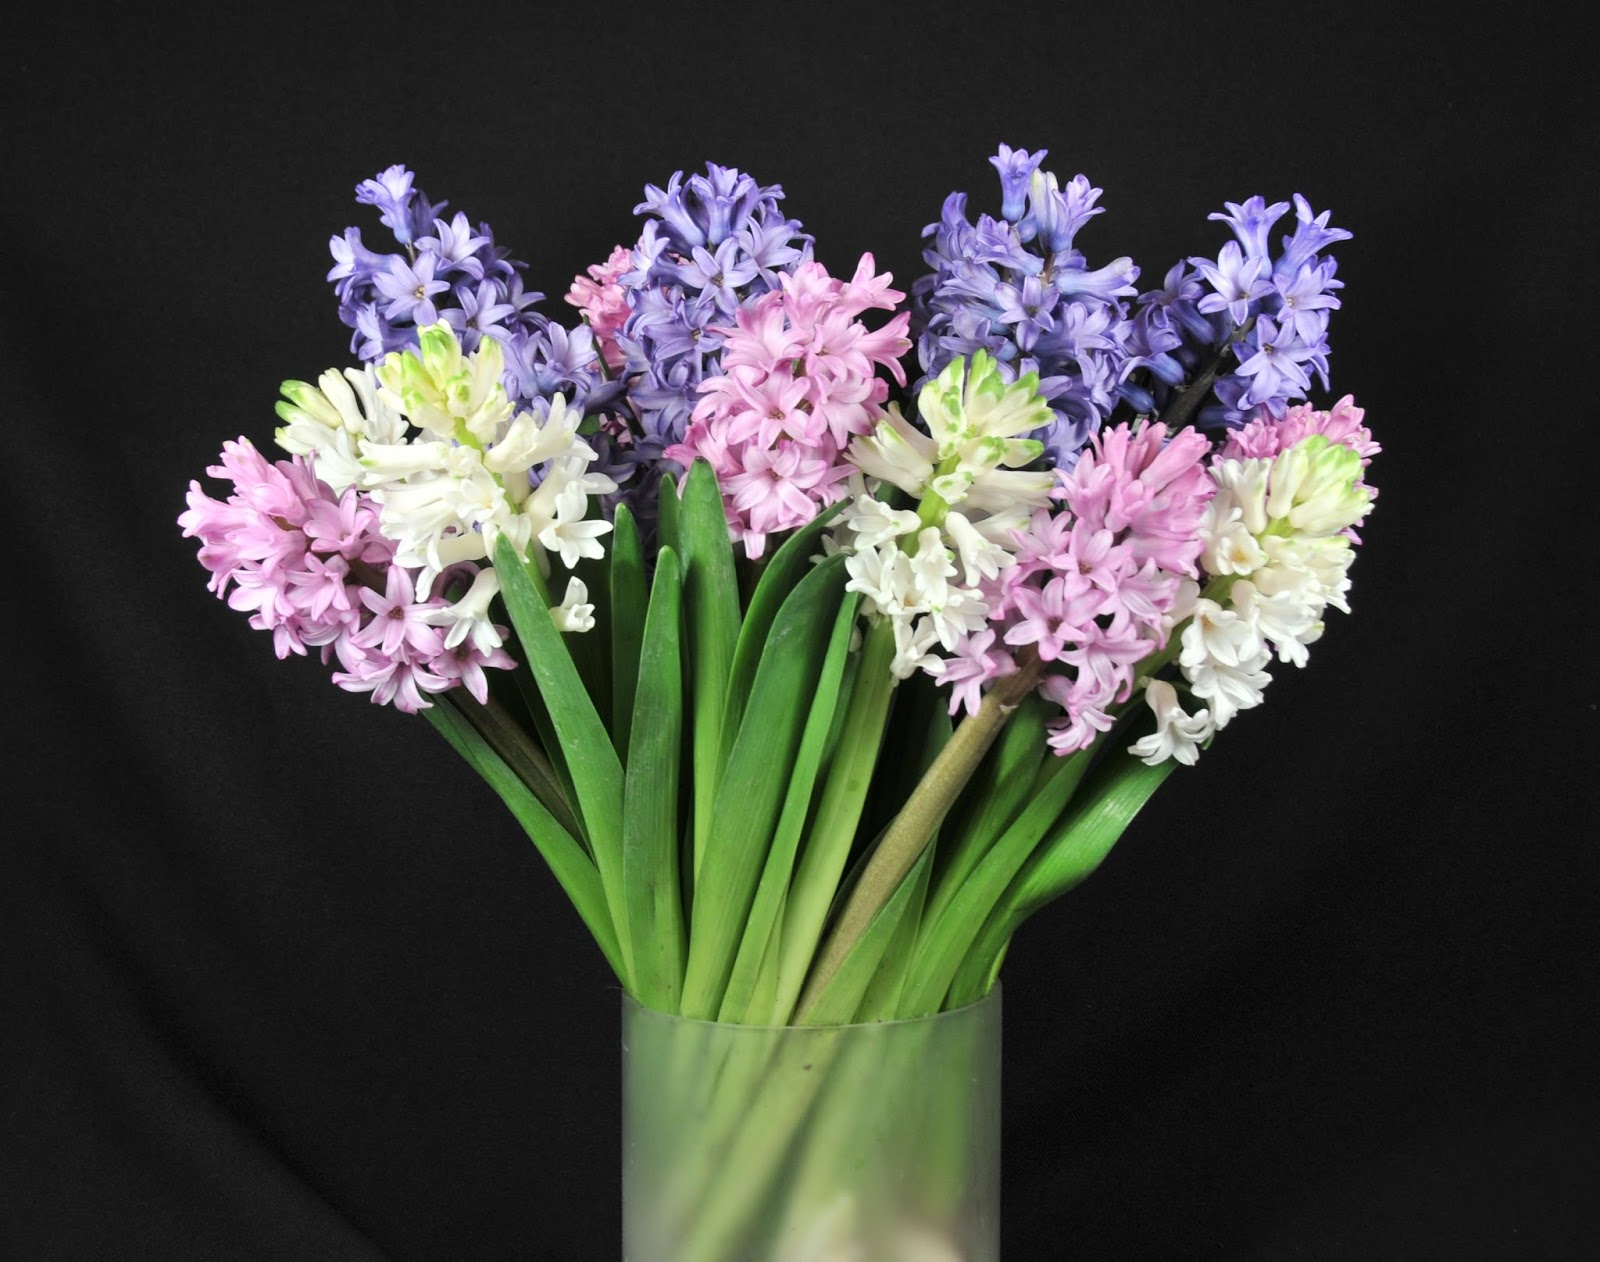 Hyacinth season is here flower talk hyacinths in a vase reviewsmspy